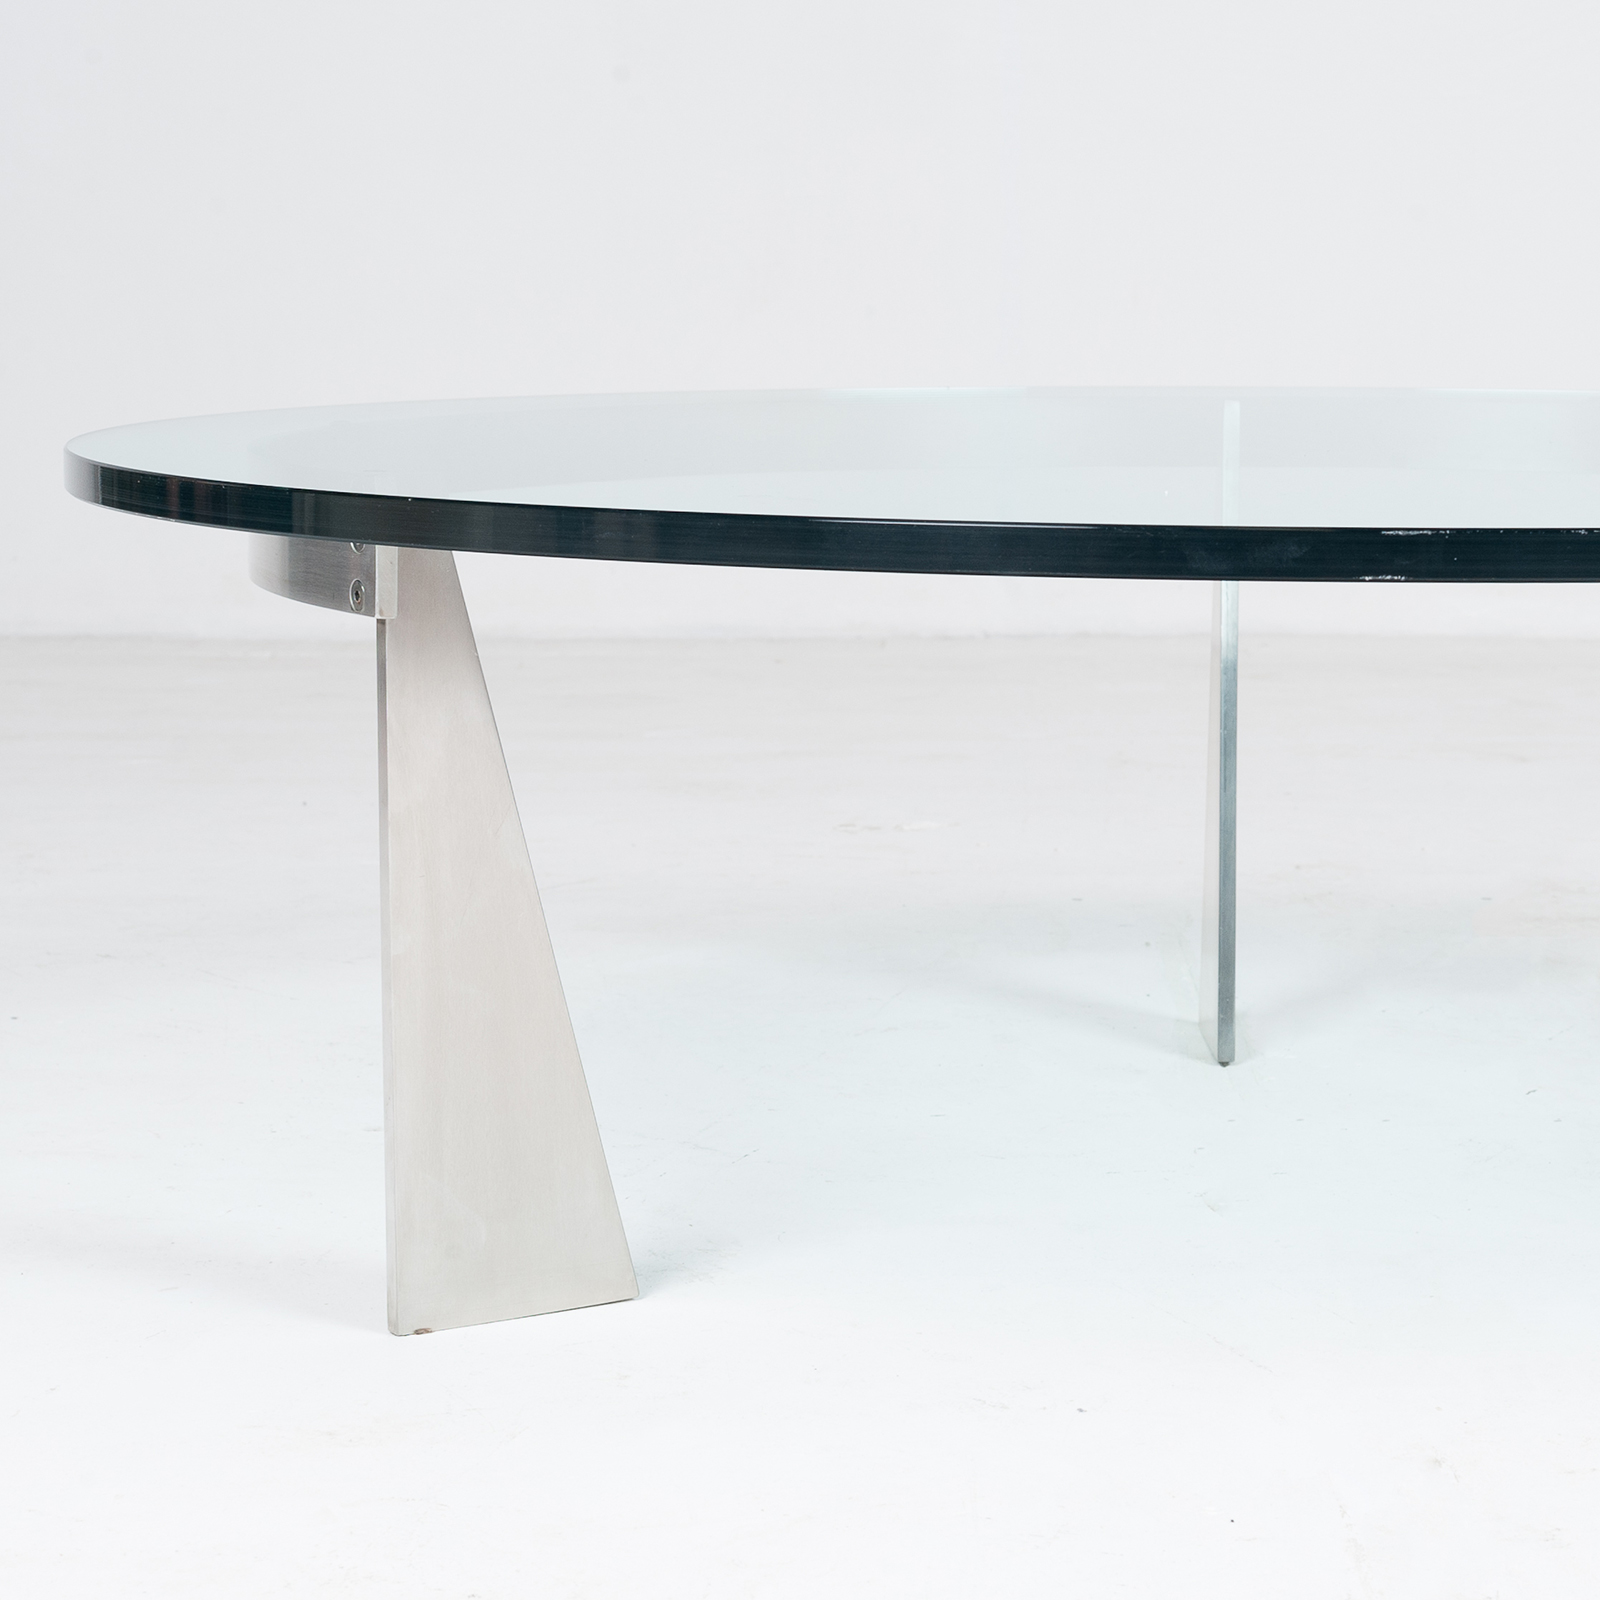 Round Coffee Table By Metaform, 1980s, The Netherlands 4